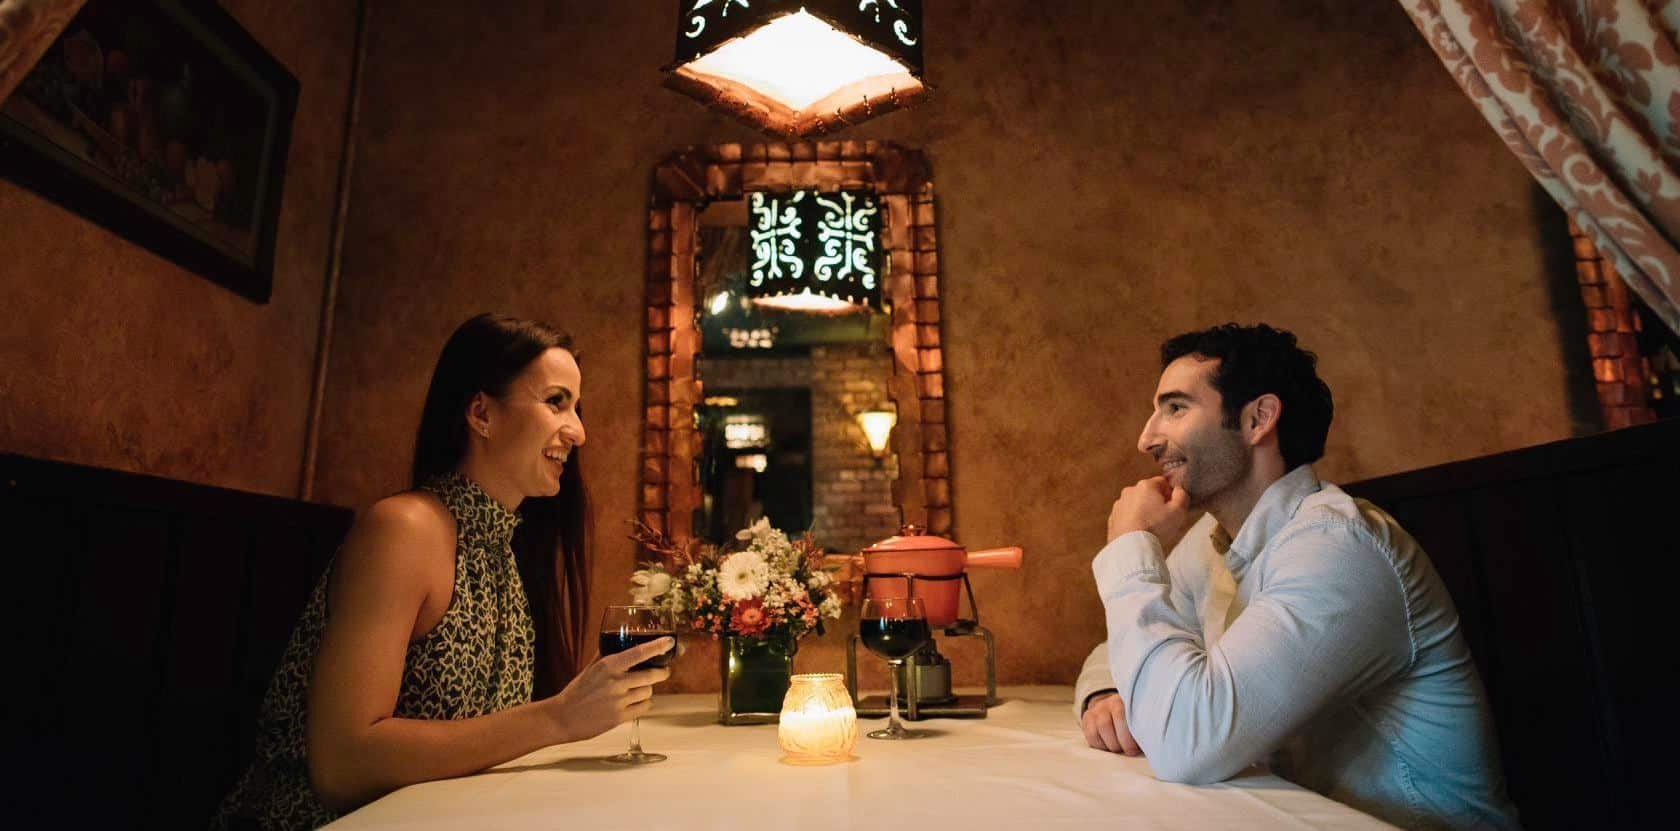 Most Romantic Restaurants in Illinois